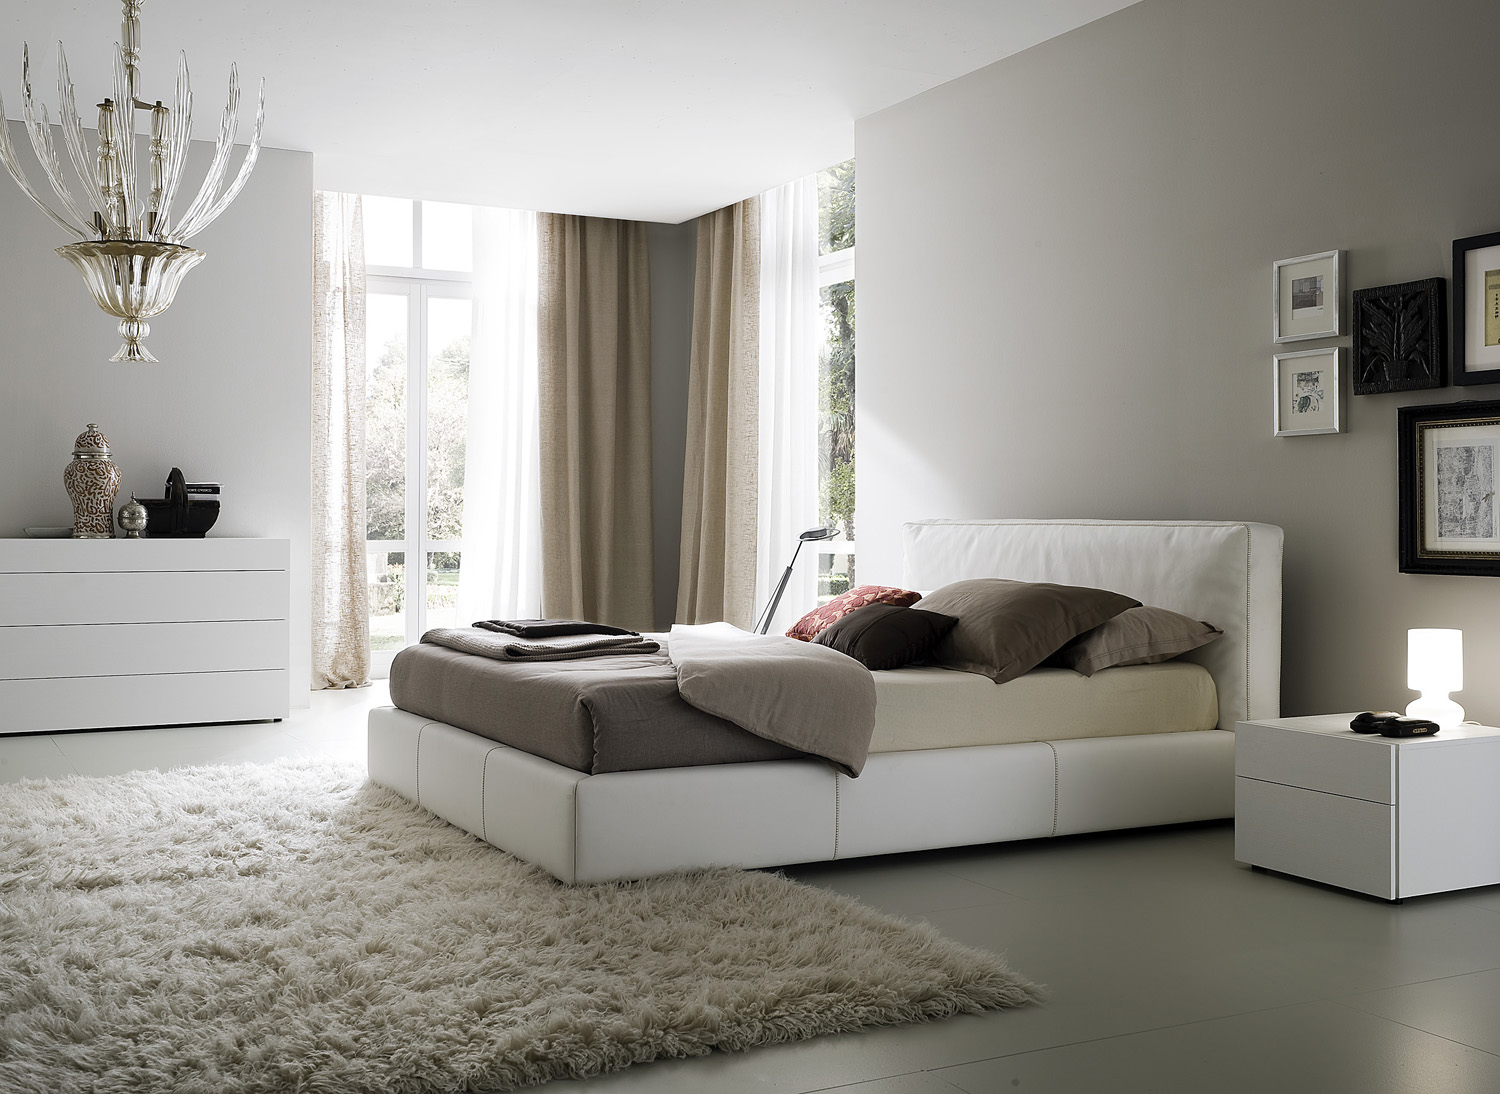 Bedroom decorating ideas from evinco for New bedroom design ideas